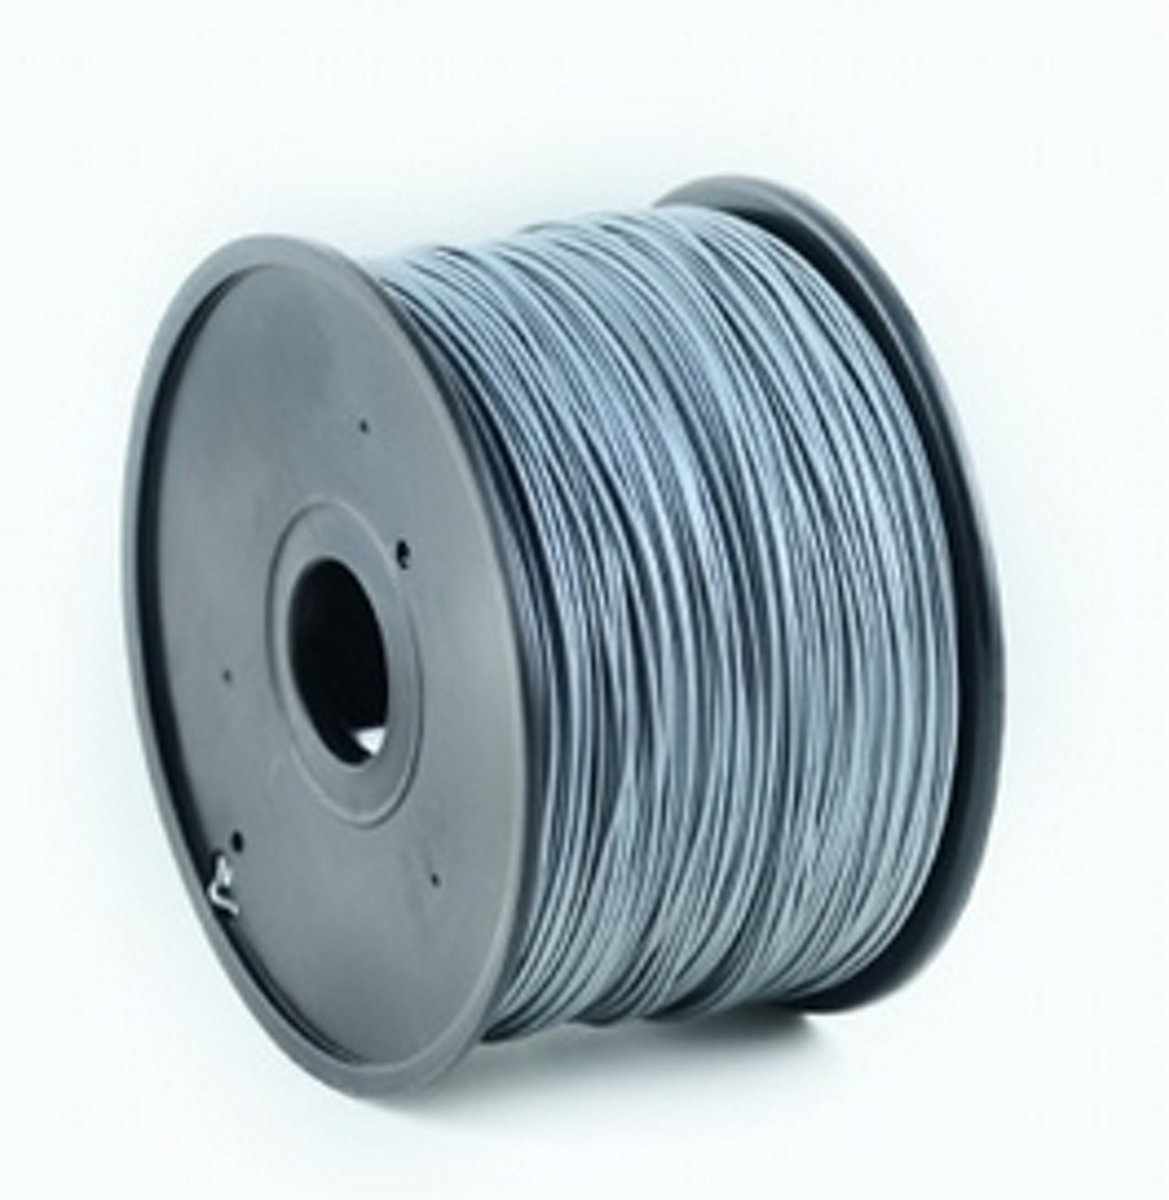 Gembird3 3DP-ABS1.75-01-S - Filament ABS, 1.75 mm, zilver